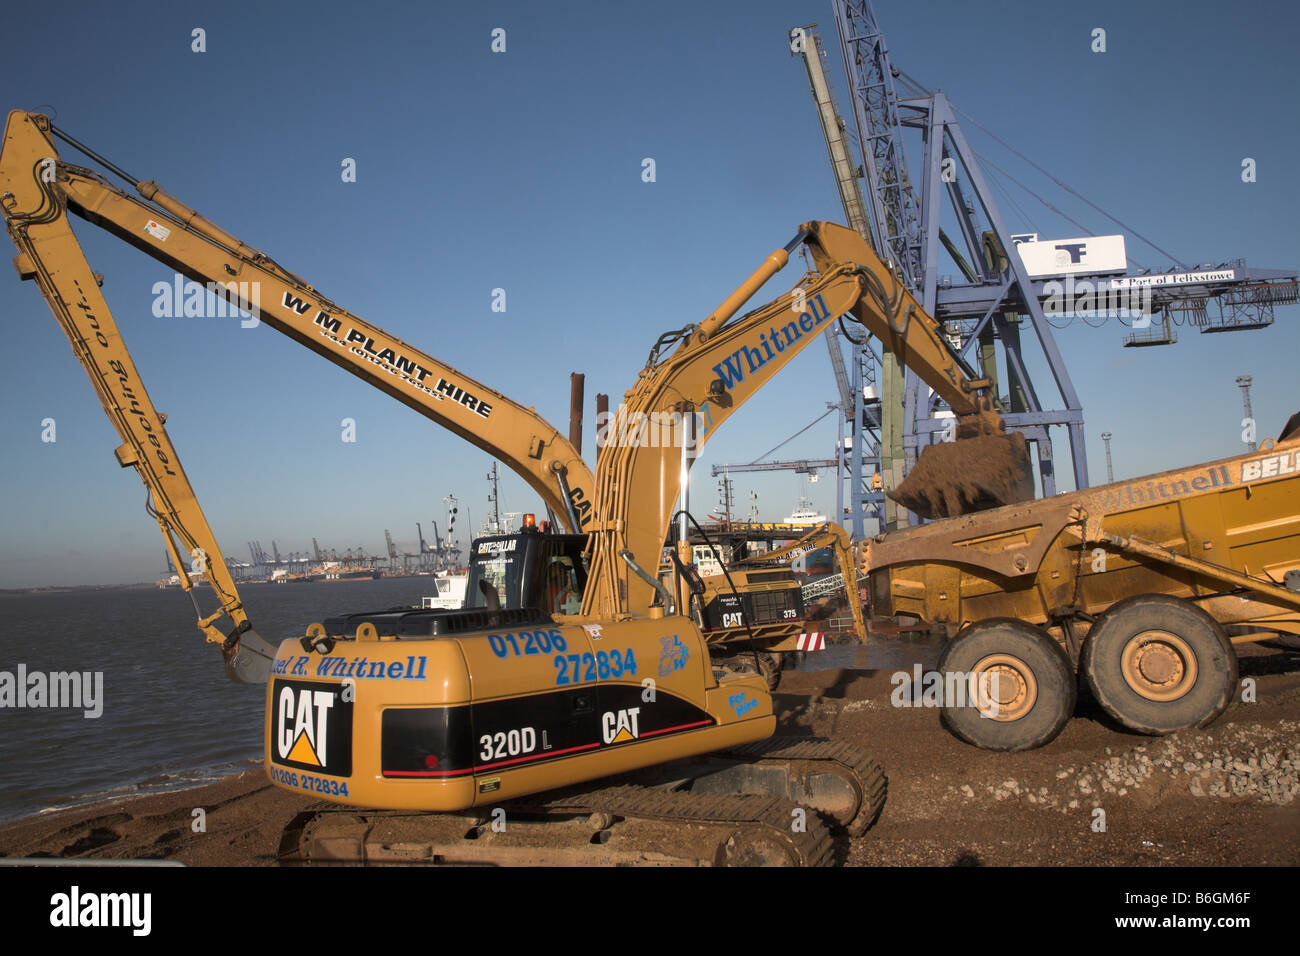 JCB diggers excavating Port of Felixstowe Suffolk England - Stock Image